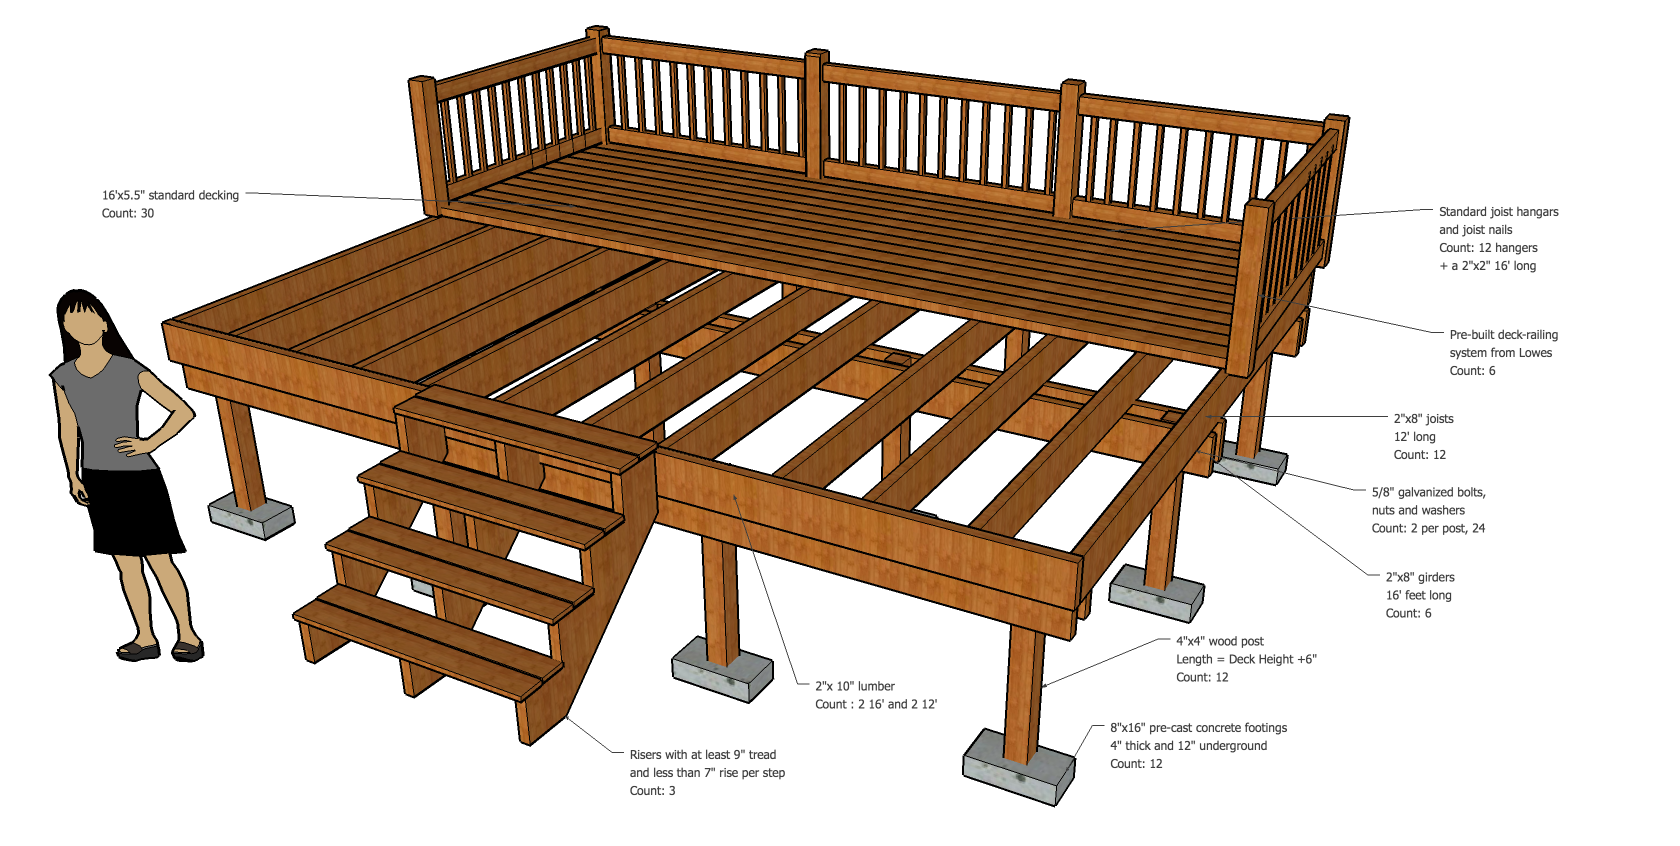 Building A Deck In Fairfax County